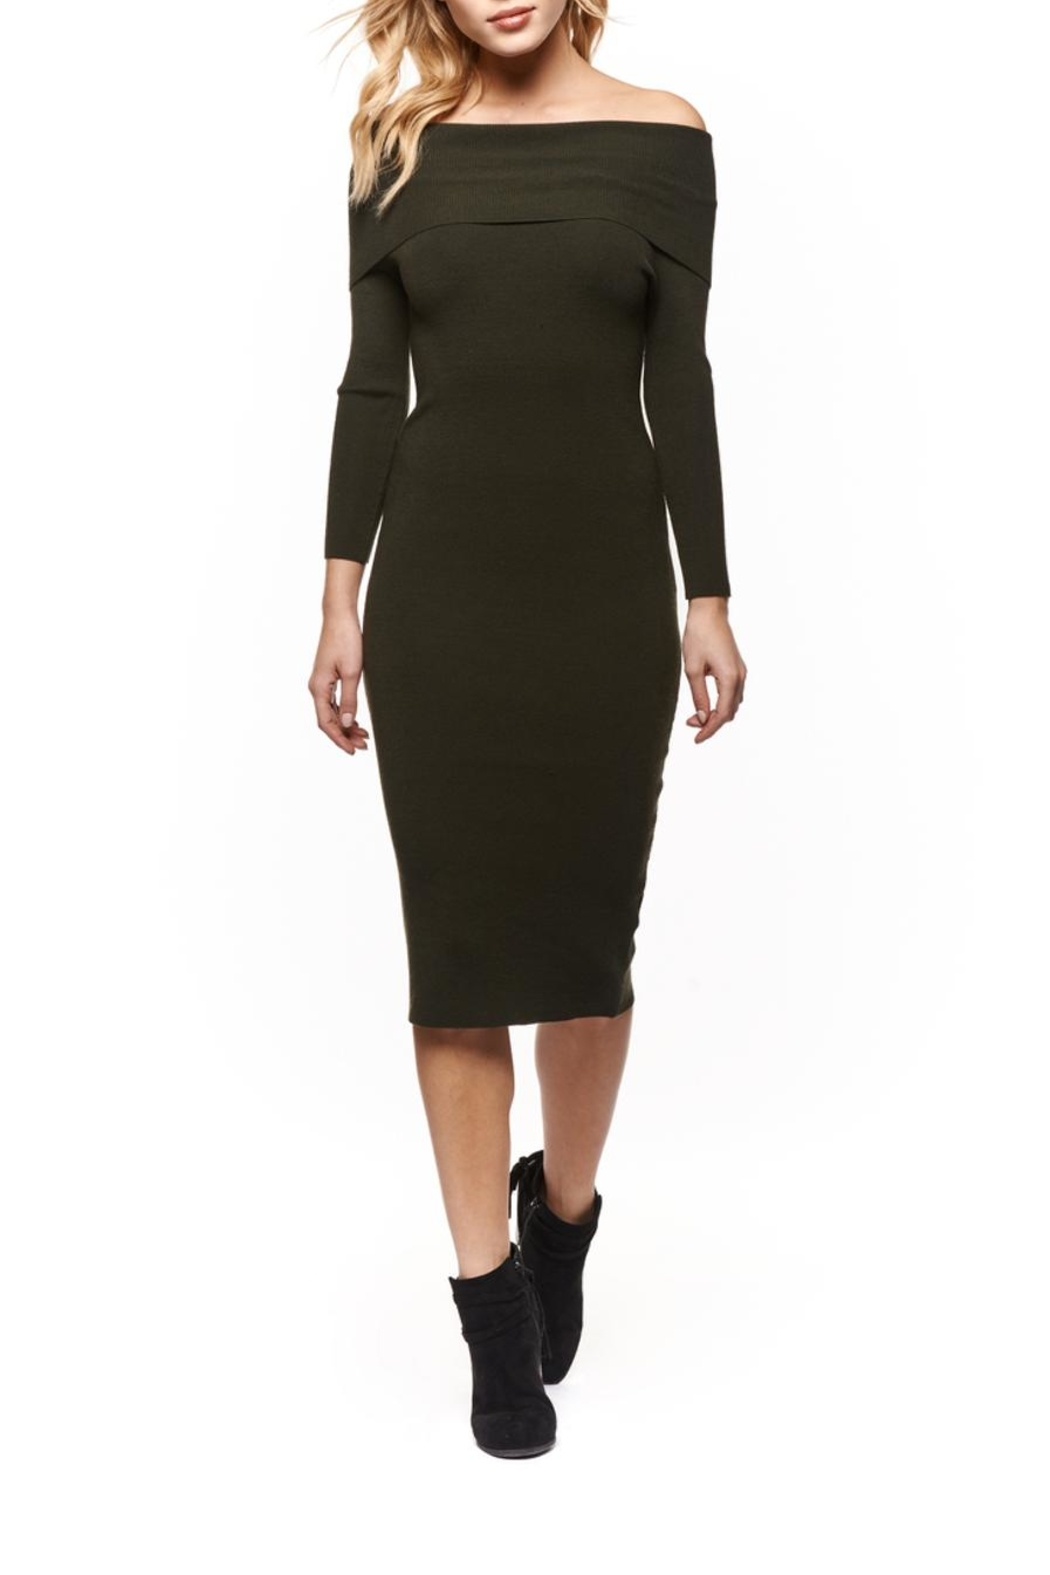 Dex Clothing Off-The-Shoulder Midi Dress - Main Image